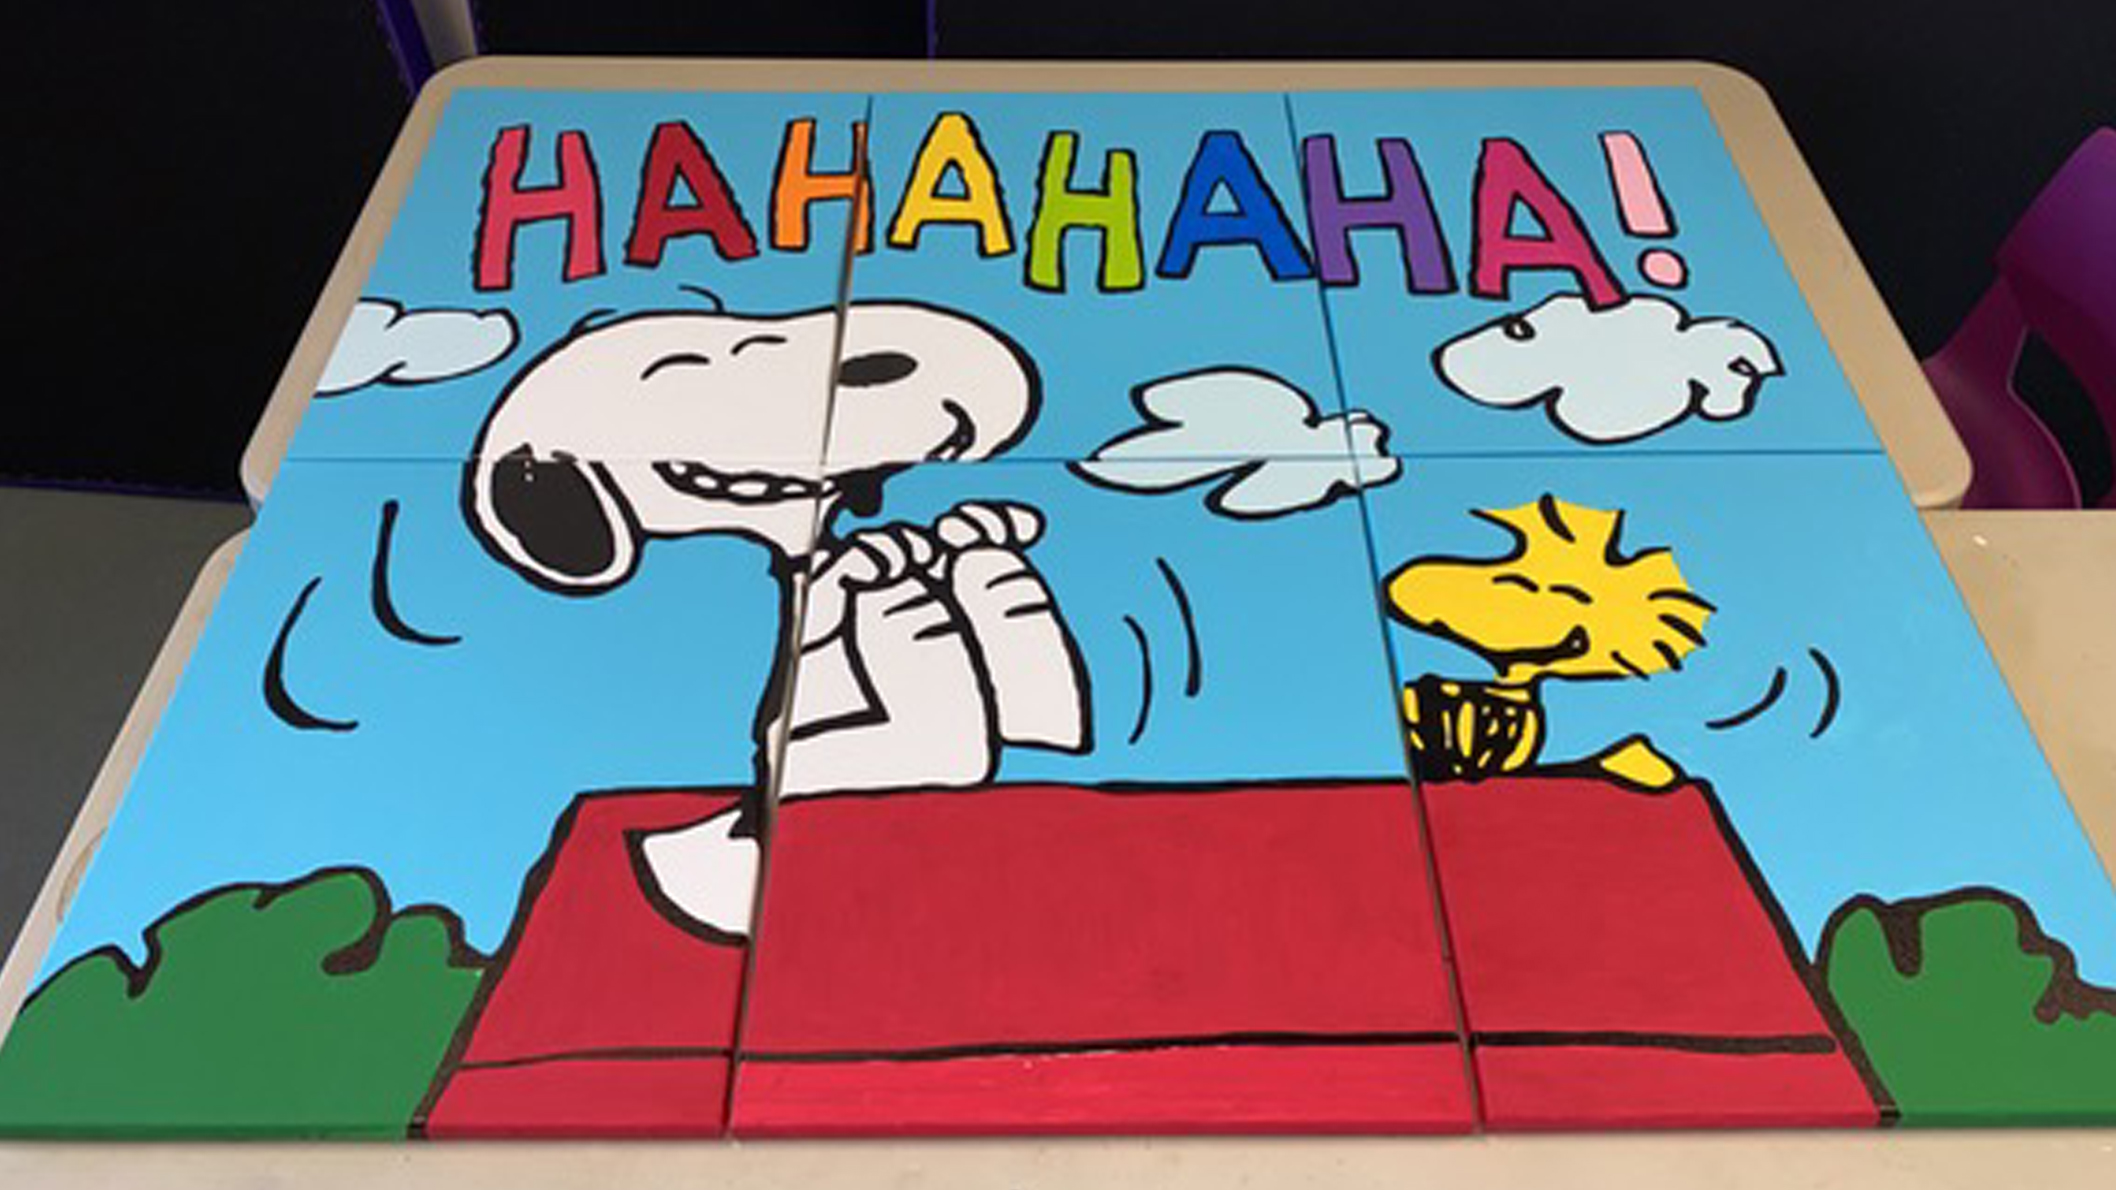 A painted mural of a black and white beagle and yellow bird laughing.